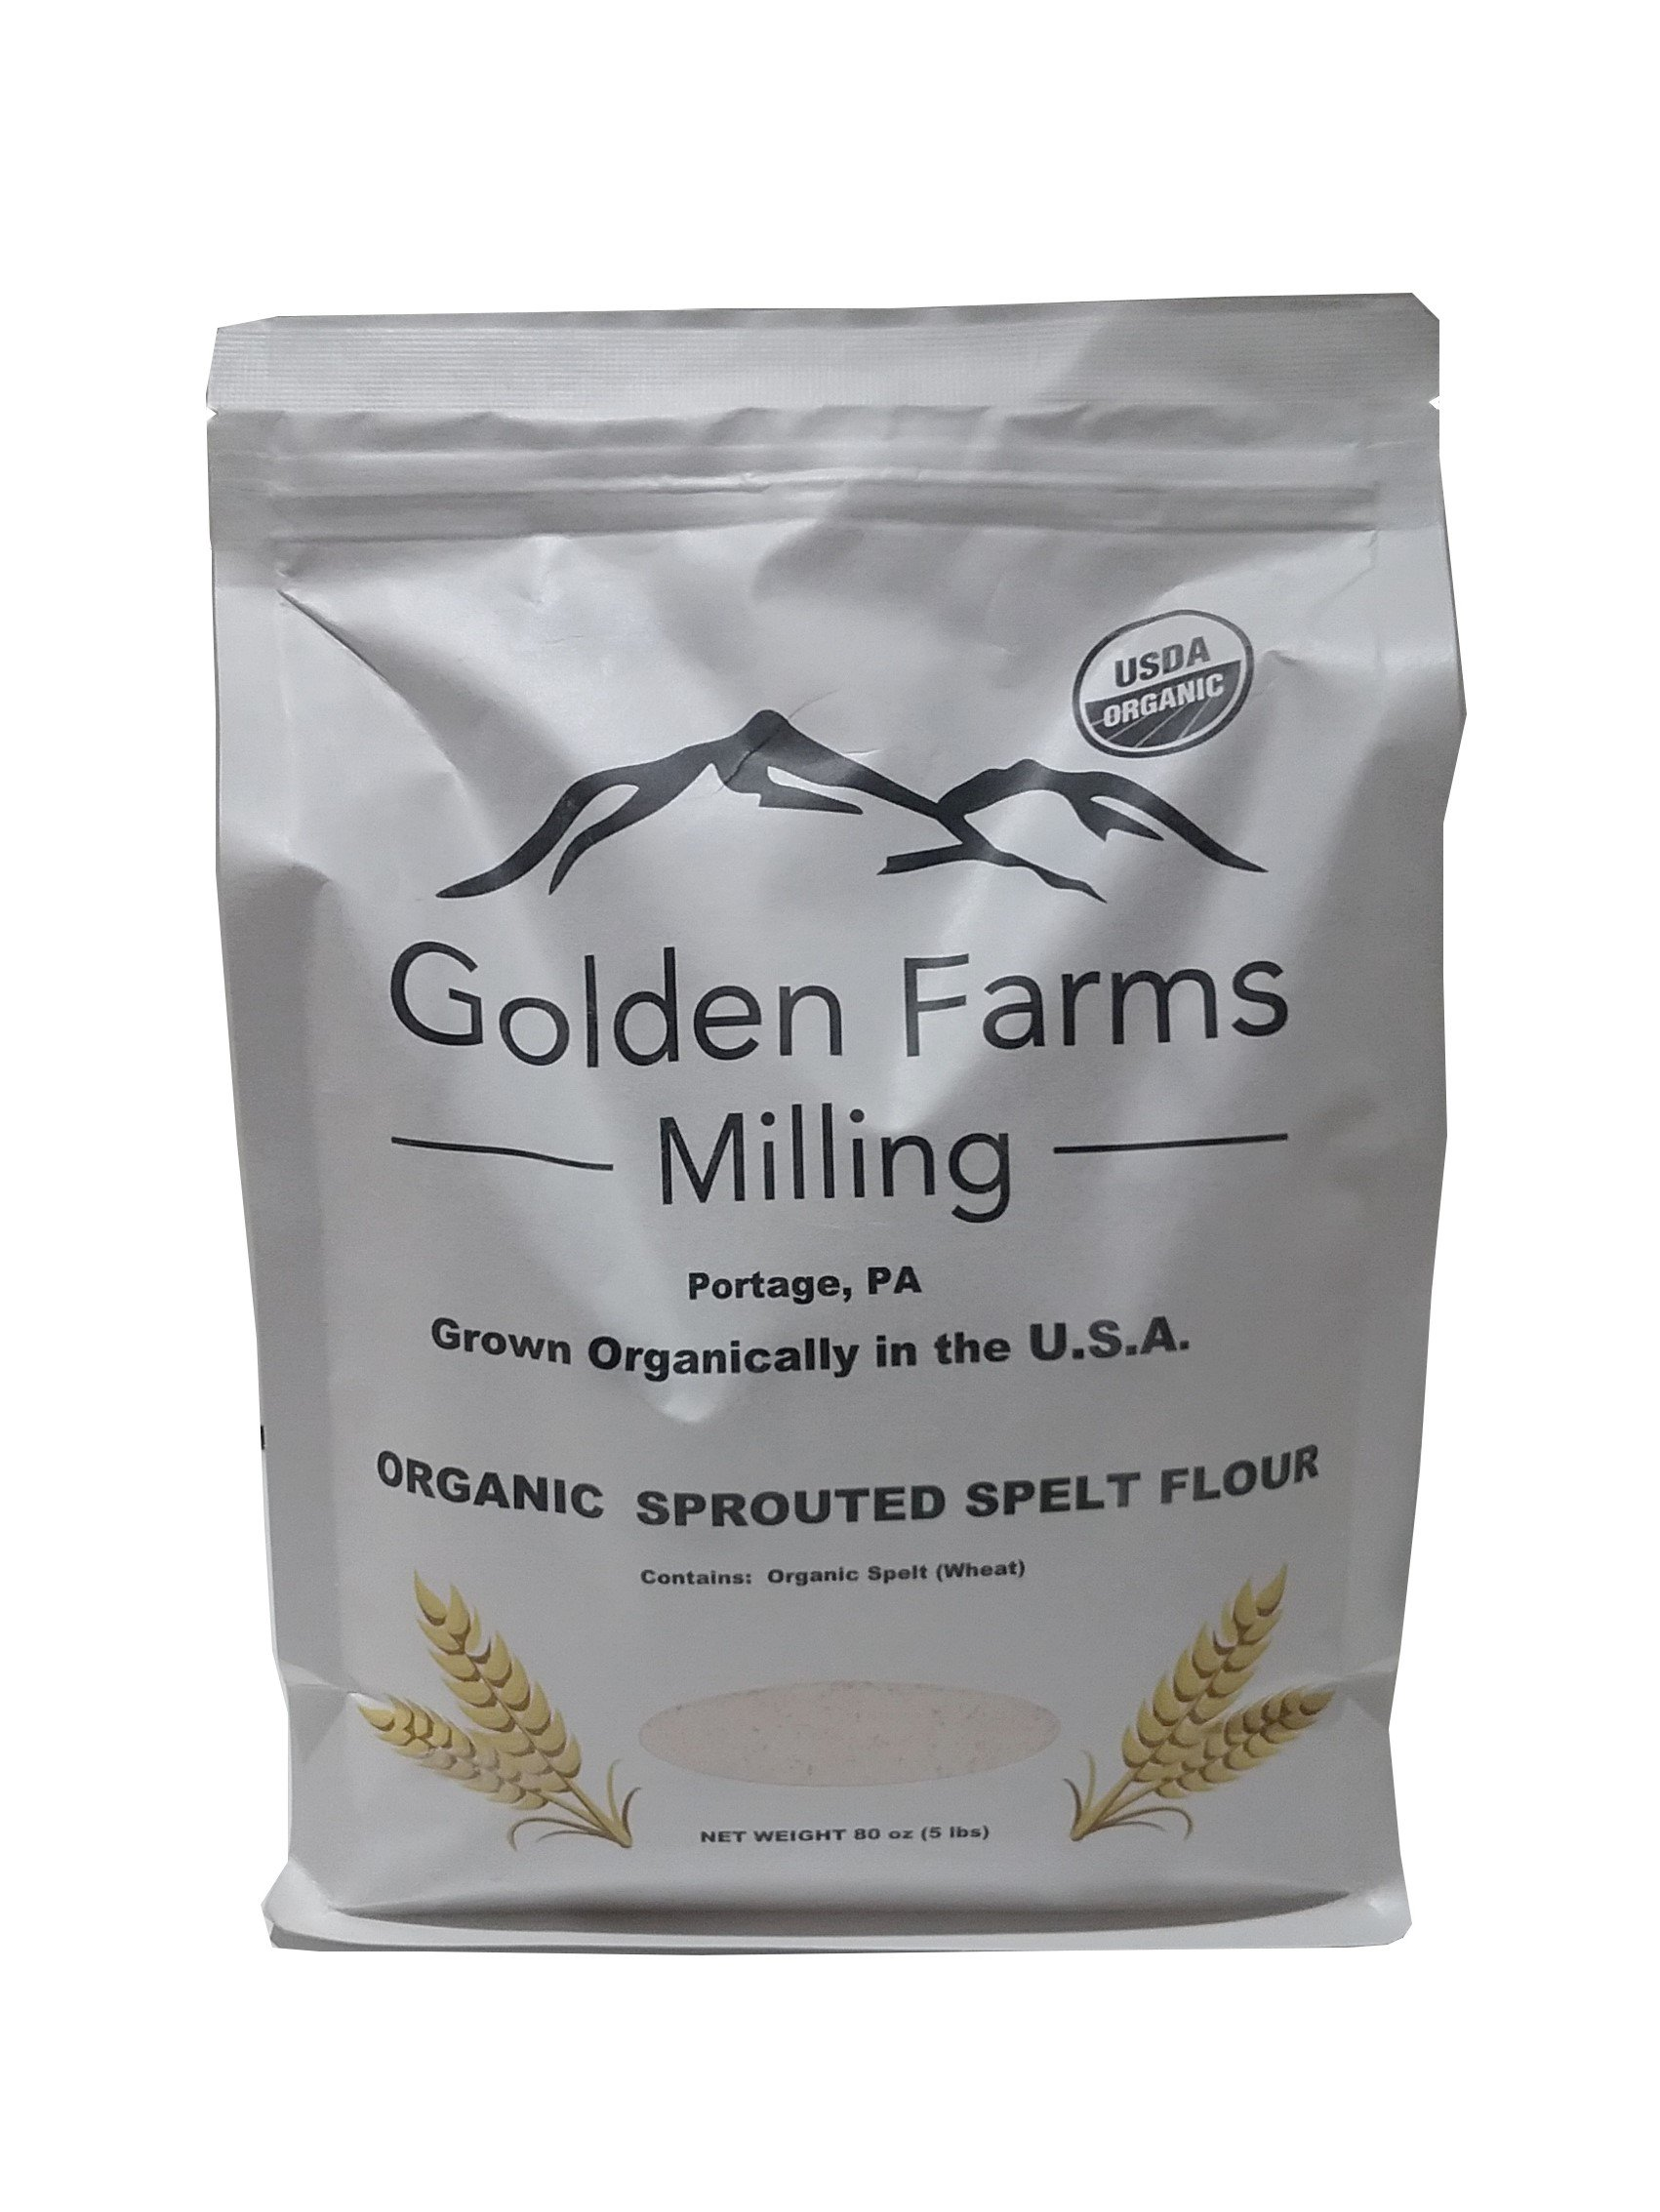 Organic Sprouted Whole Grain Spelt Flour, 80oz (5lbs)